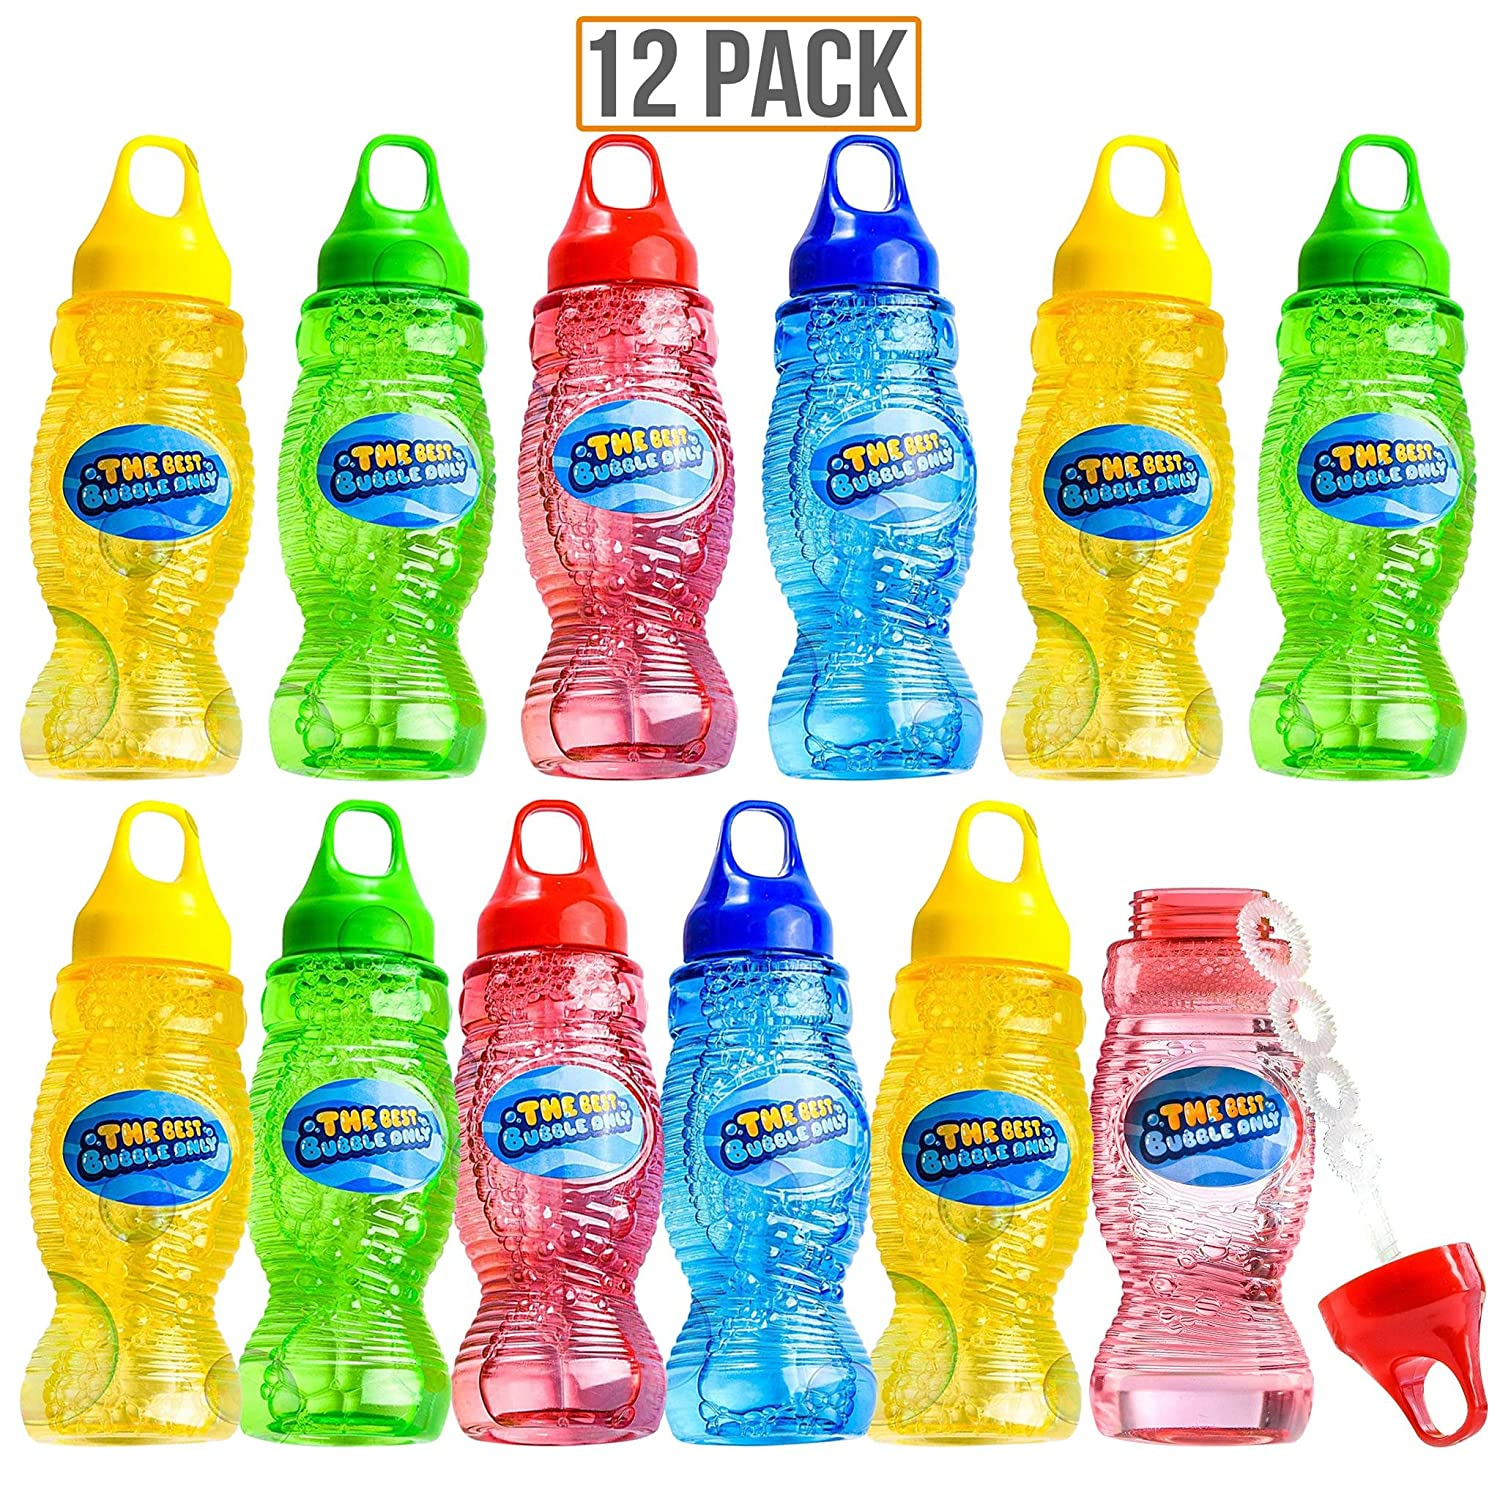 Prextex 12 Pack 8 Oz Bubble Solution with Wand Bubble Gun Refill Kids Outdoor Toys for Pool Birthday Wedding Bubble Party Favors